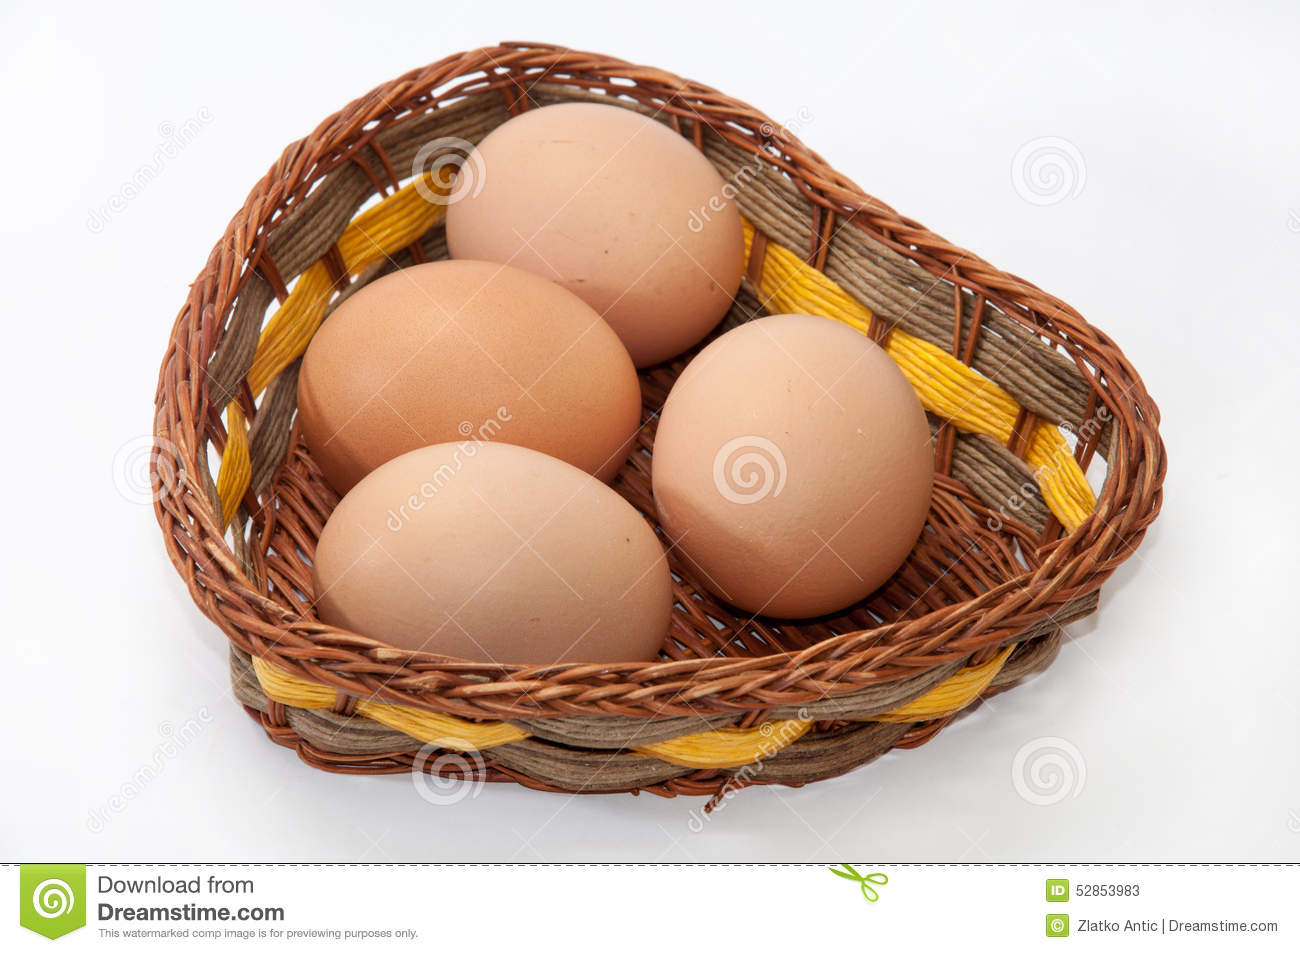 Chicken eggs in a wicker basket